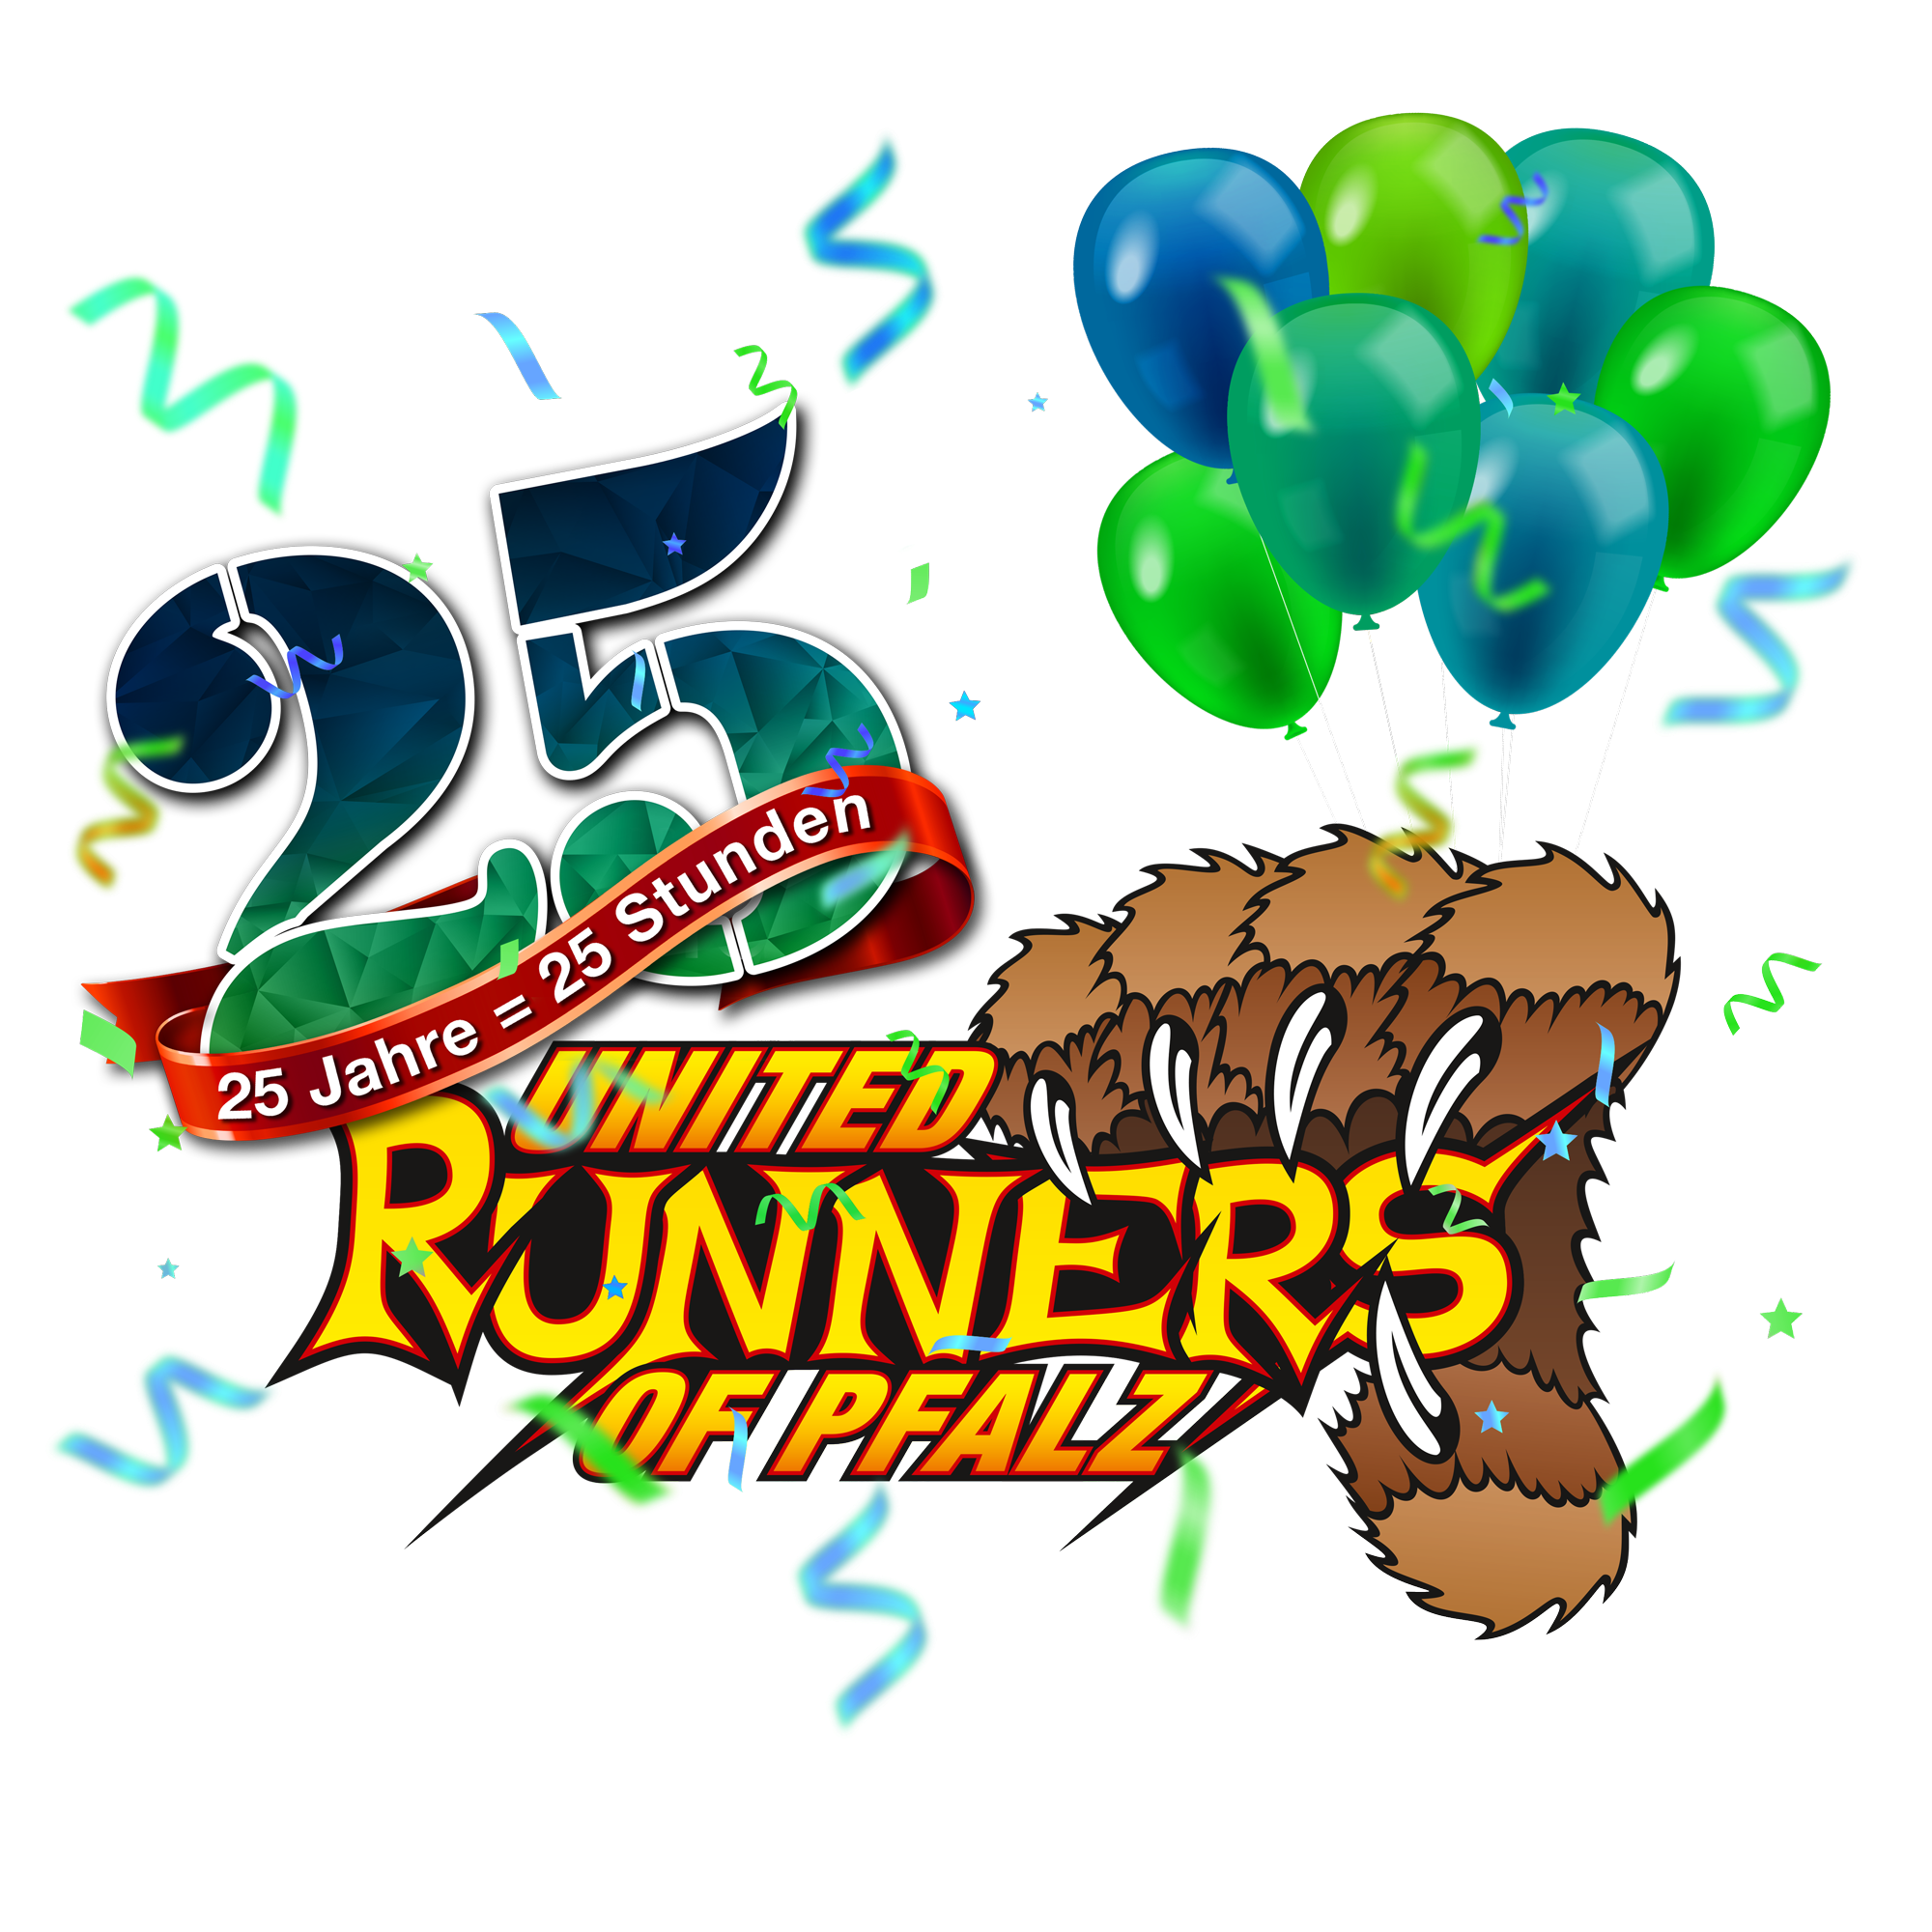 https://united-runners-of-pfalz.de/wp-content/uploads/2020/05/25-jahre.png